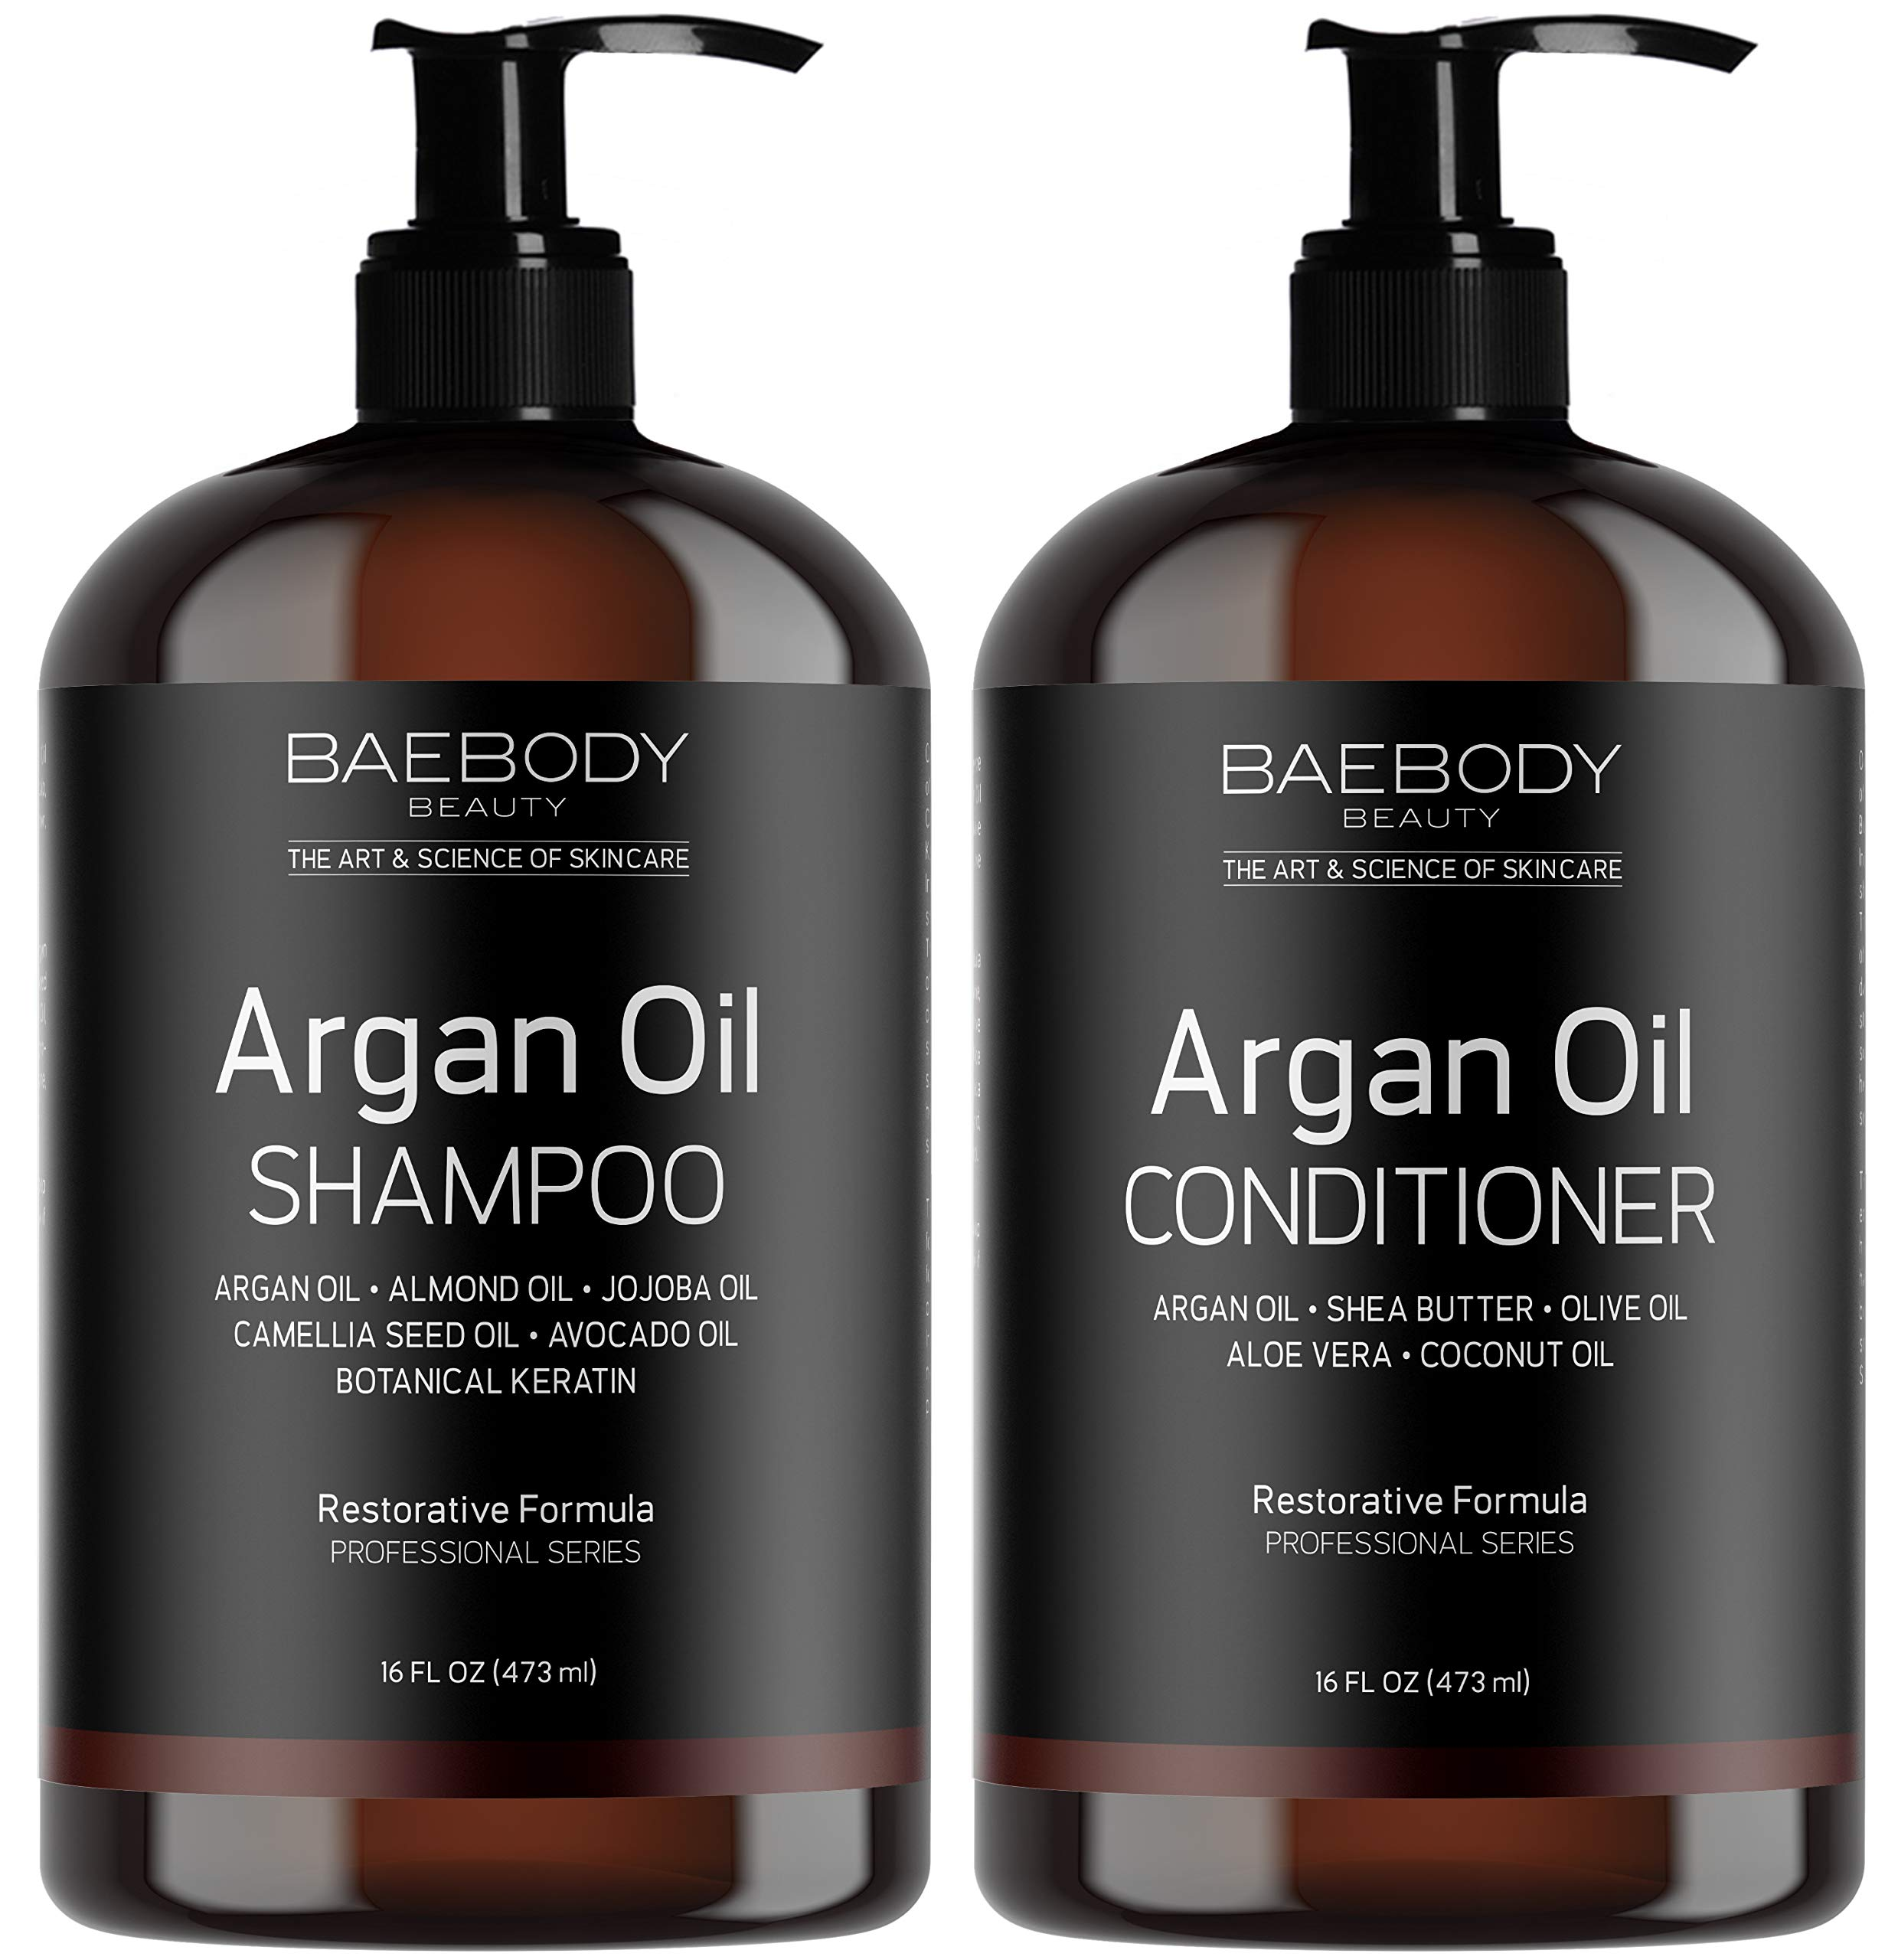 Moroccan Argan Oil Shampoo & Conditioner Set 16 Oz – Volumizing & Moisturizing, Gentle on Curly & Color Treated Hair, for Men & Women. Infused with Keratin.